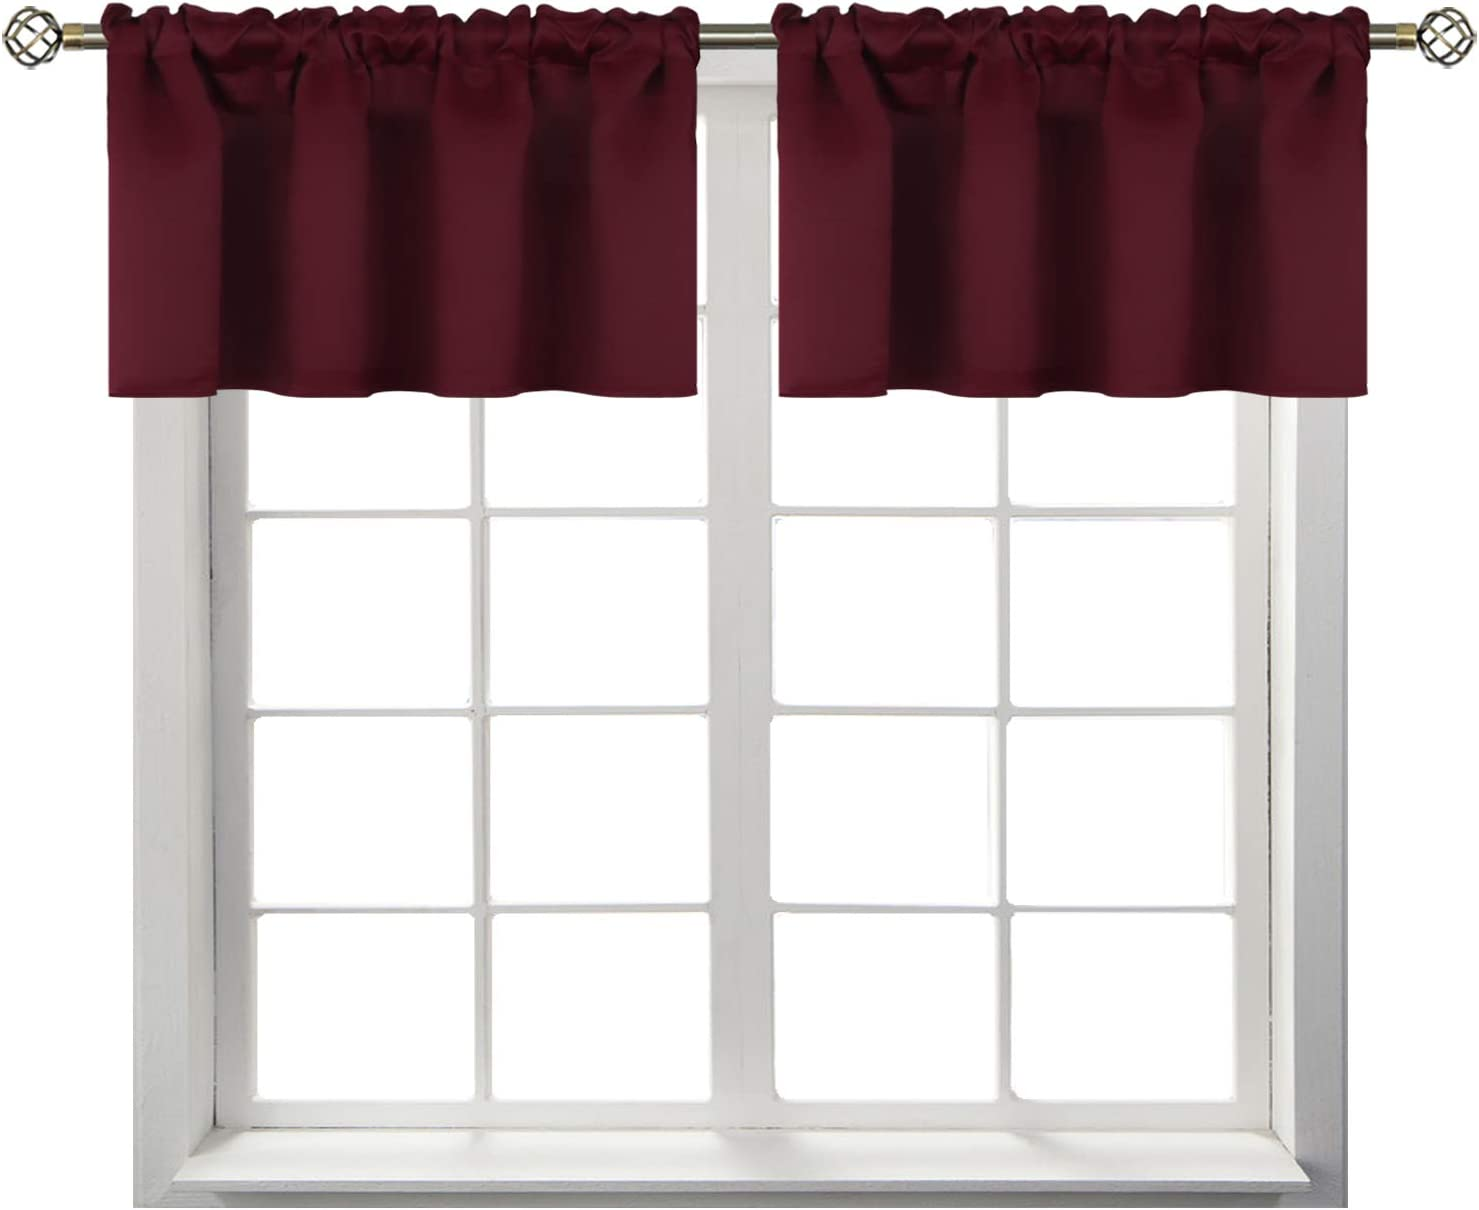 BGment Rod Pocket Valances for Kitchen- Thermal Insulated Room Darkening Tier Valance Curtain for Dinning Room, 42 x 18 Inch, 2 Panels, Burgundy